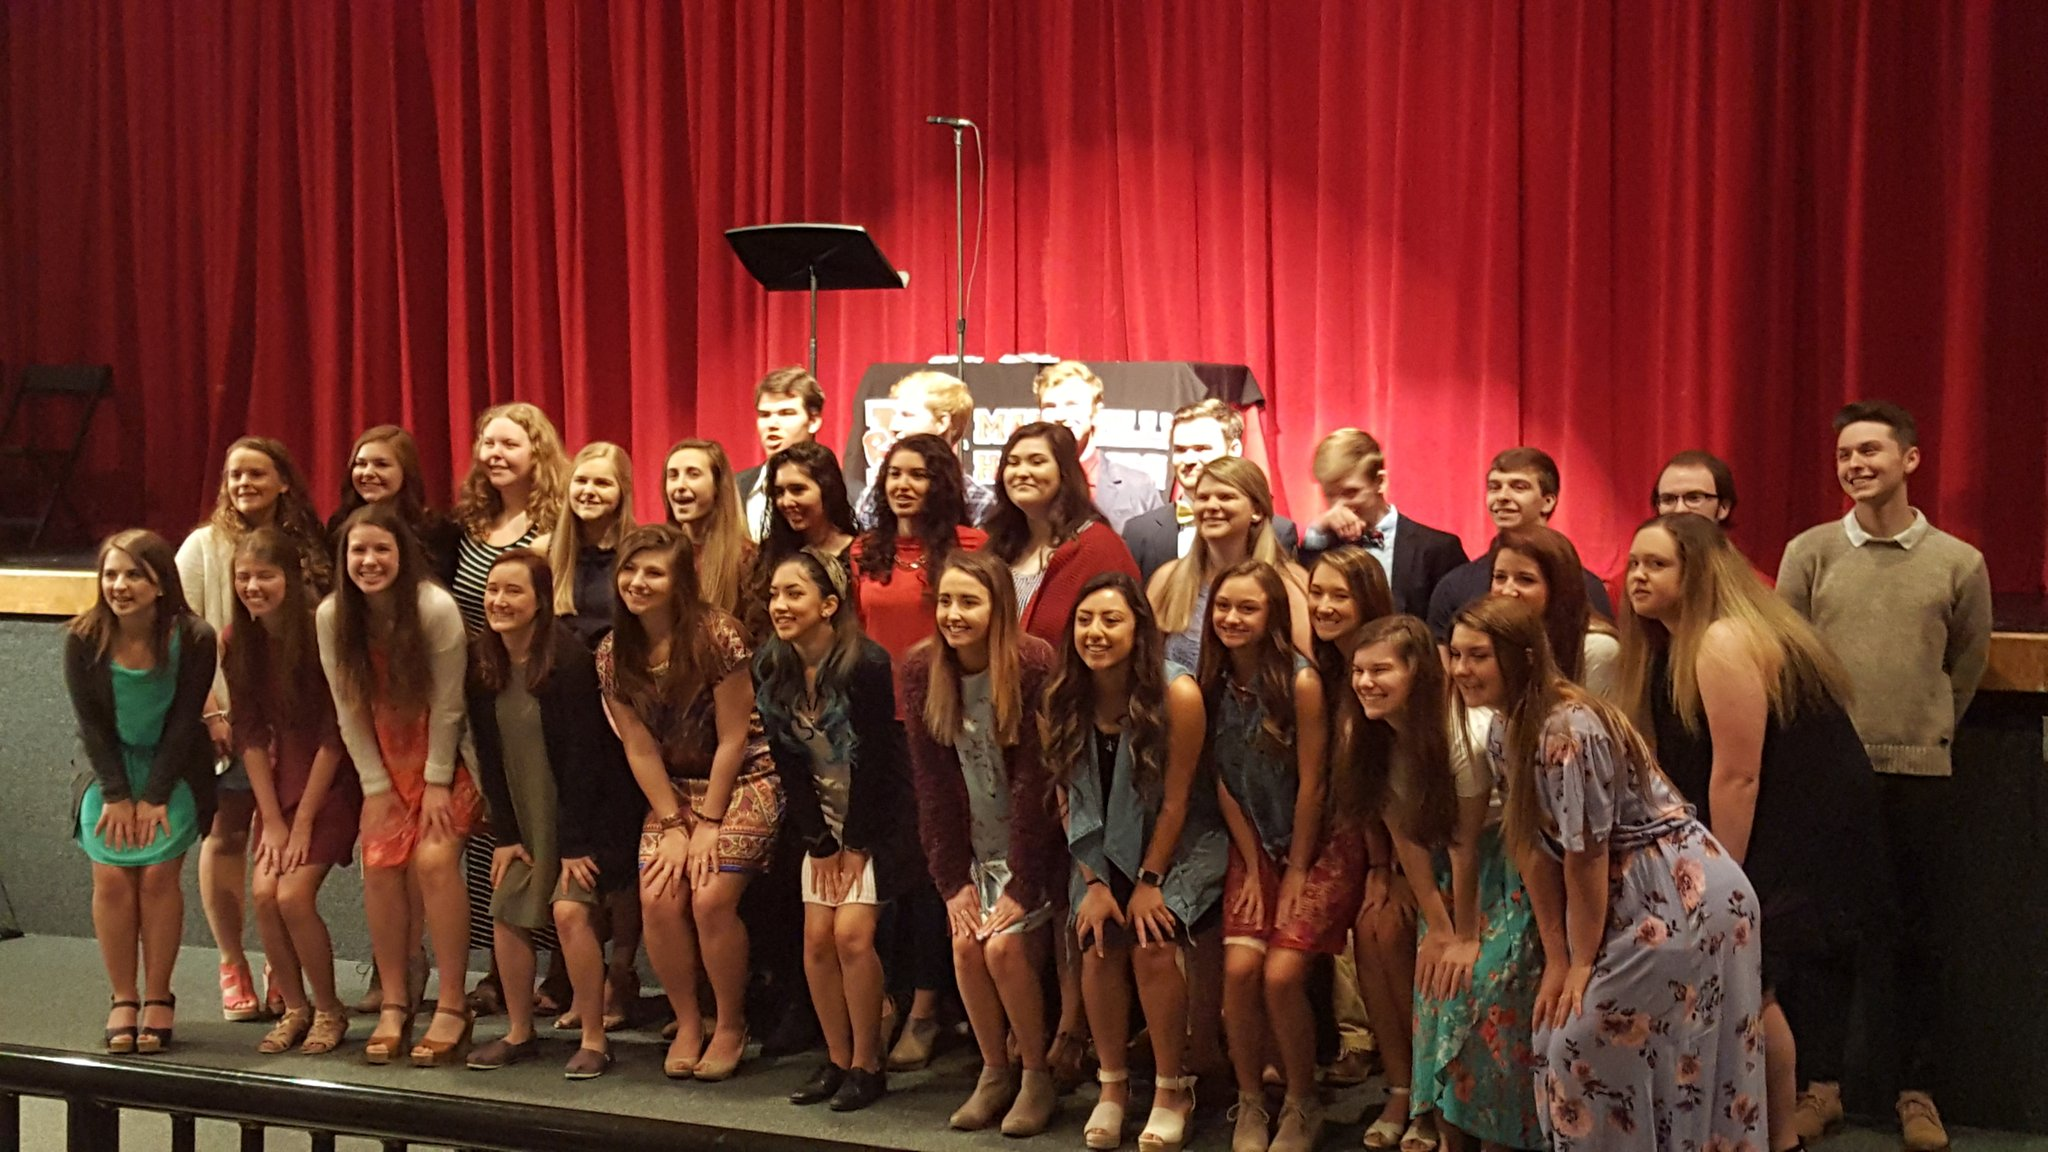 Maryville Schools Tn On Twitter Congratulations To All 31 Mhs Health Science Students Who Were Pinned Today For Earning Cna And Ems Certifications Congrats And Best Wishes For Continued Success Maryvilleproud Https T Co Qz9lljyslq